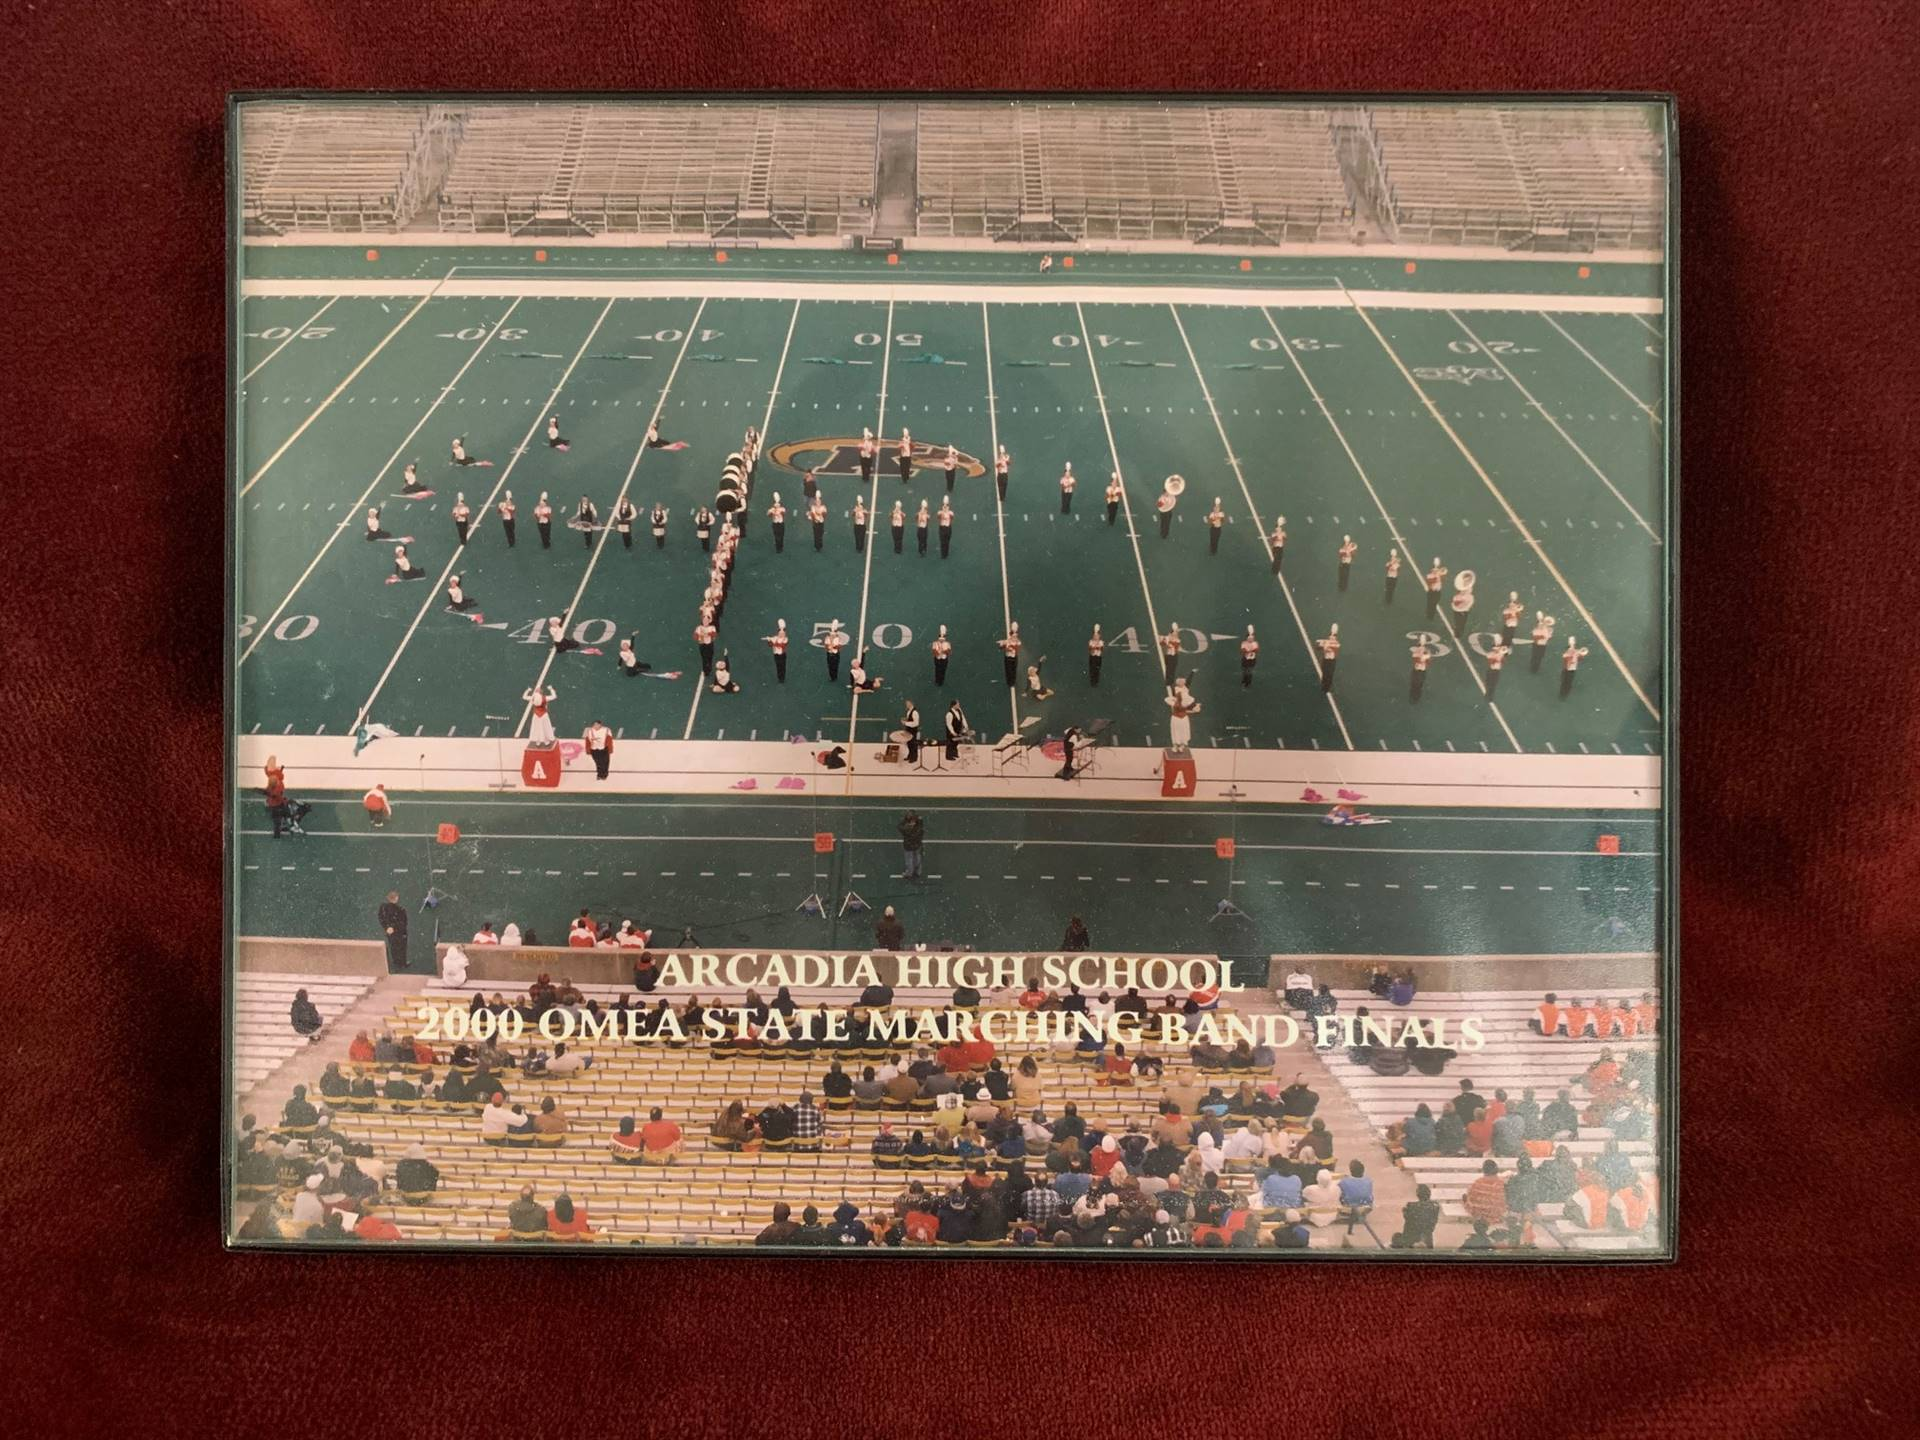 State Marching Band Finals